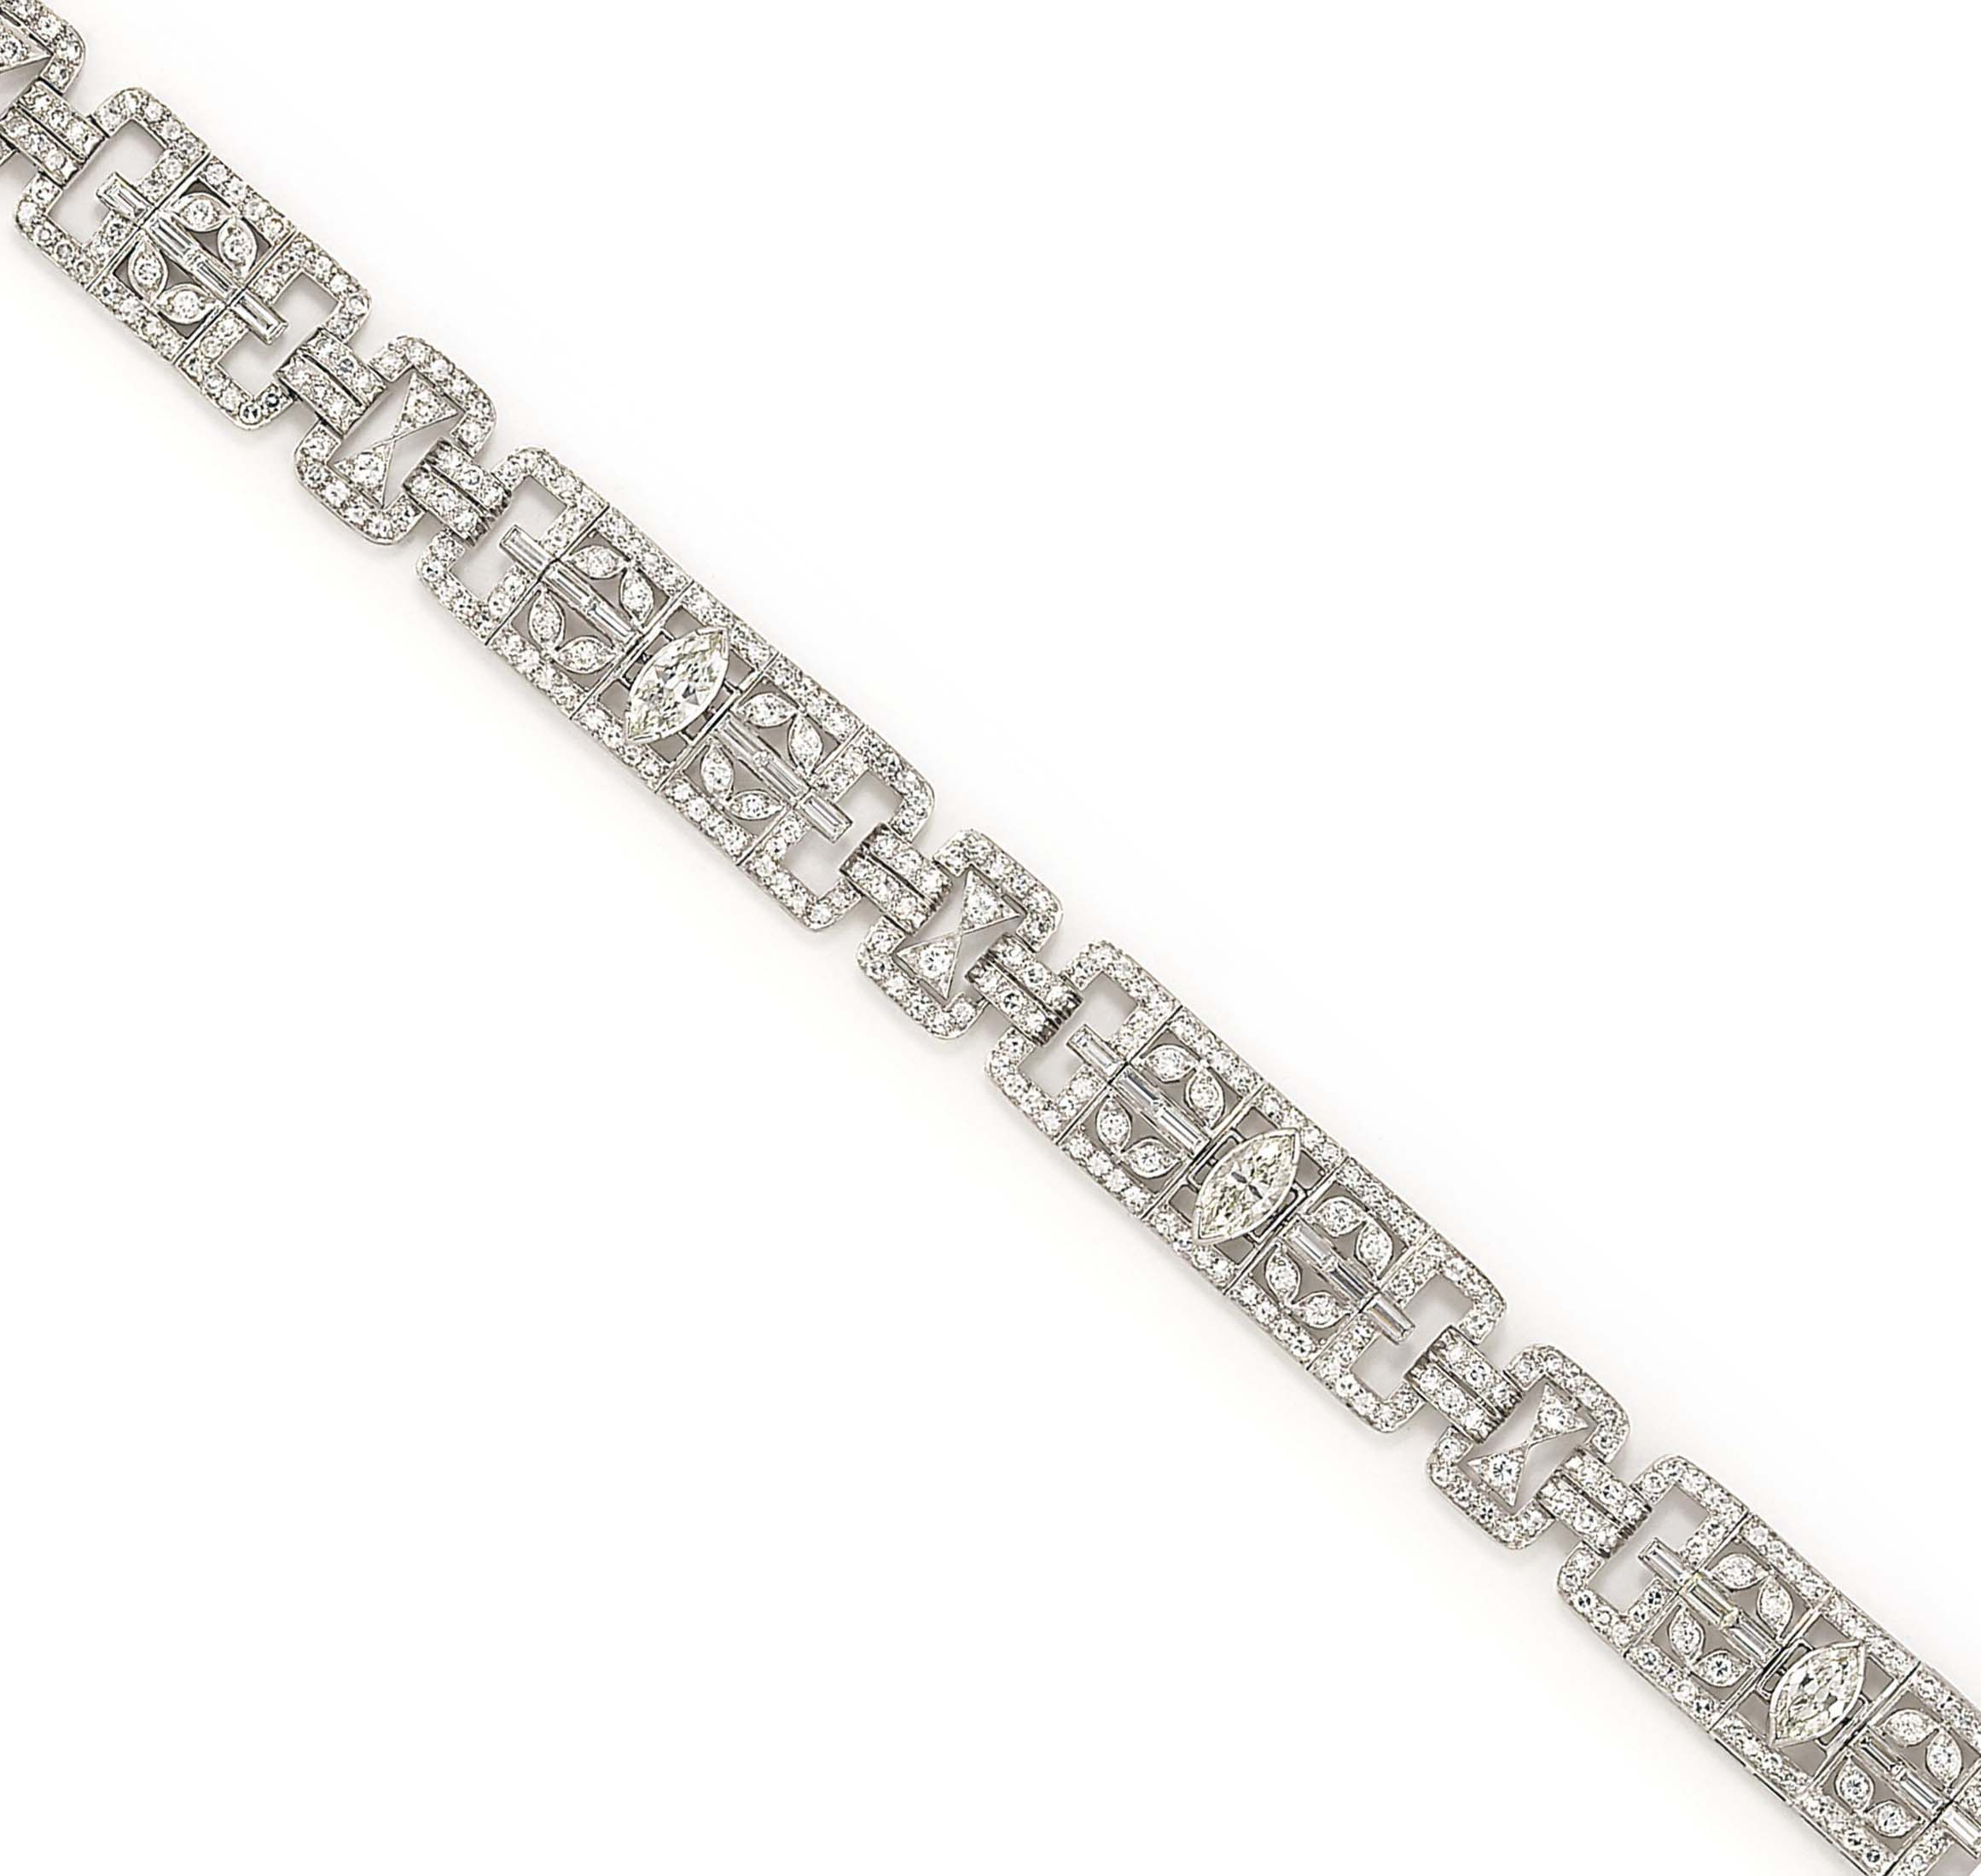 A DIAMOND-SET BRACELET, BY JAH